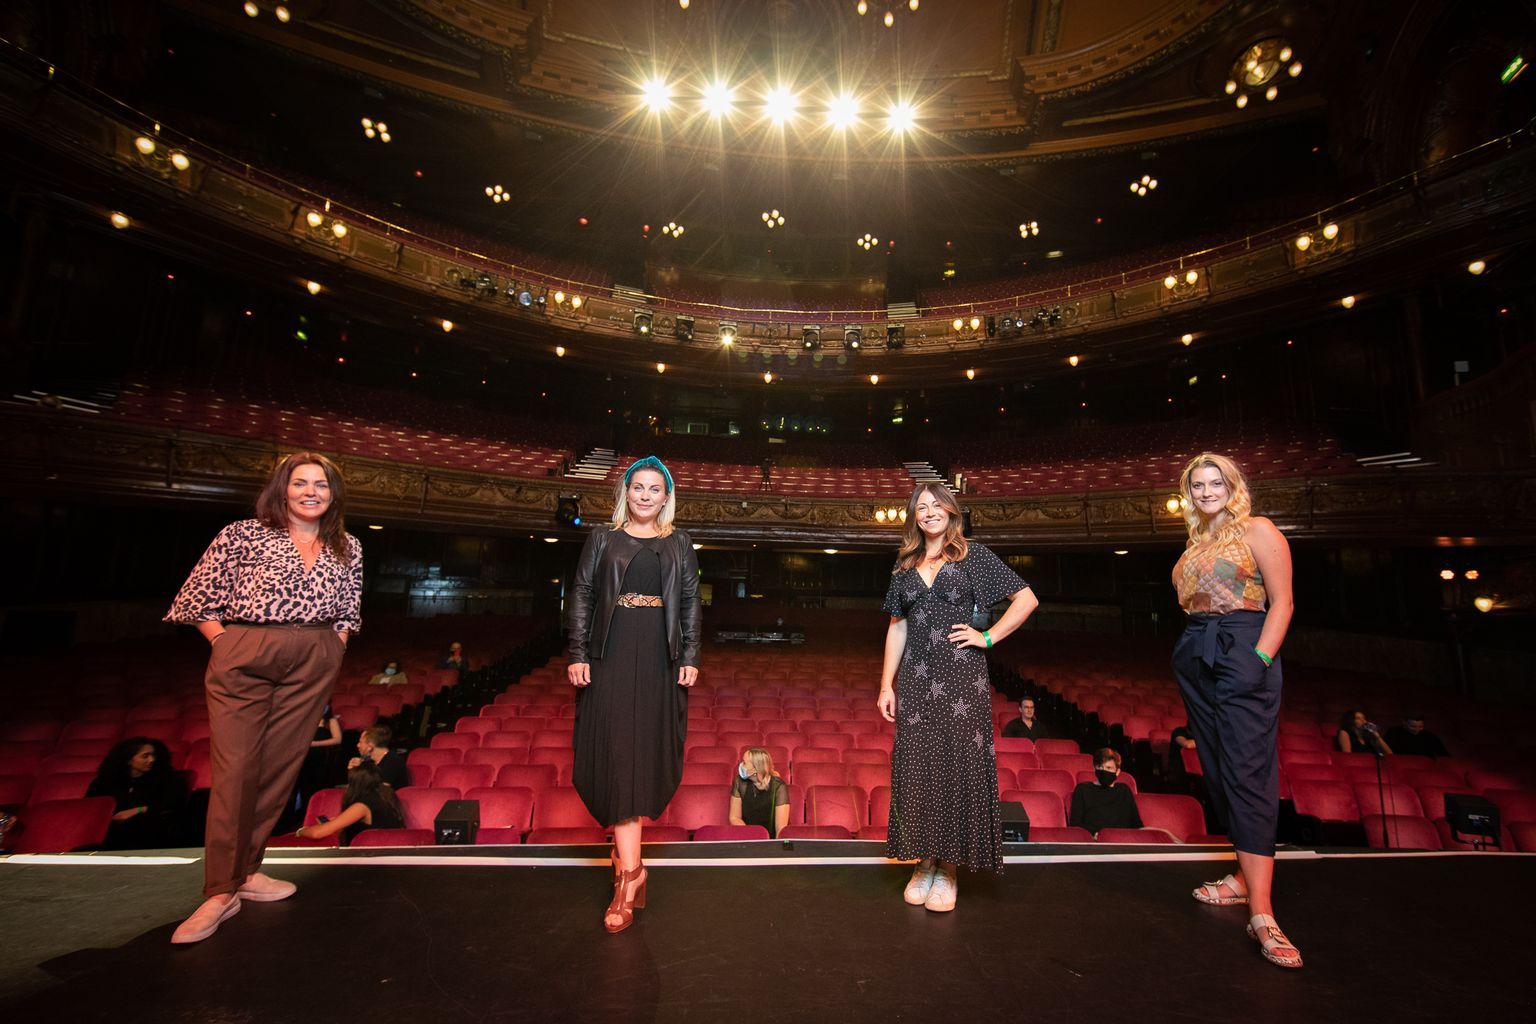 EXCLUSIVE: Four past Elphaba stars team up for a performance of Defying Gravity